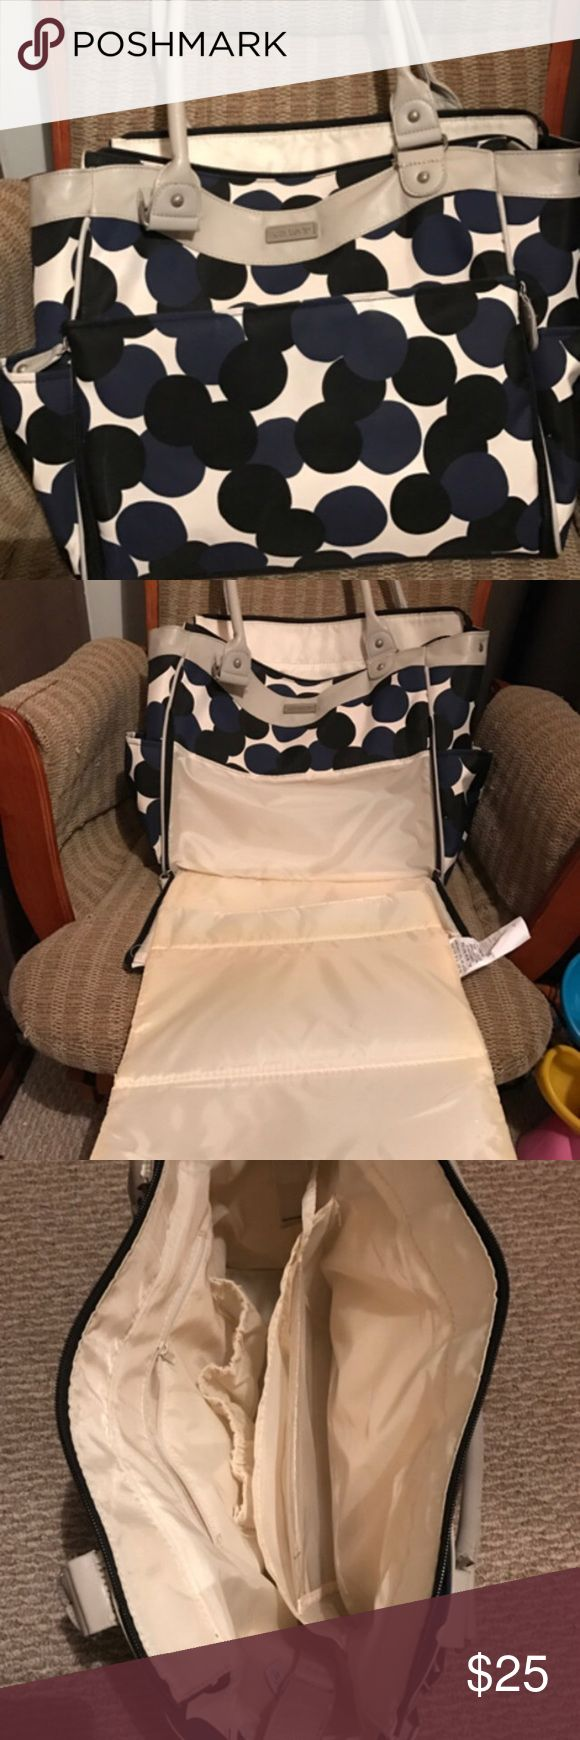 Carter's Polka dot diaper bag Very seldom used. Great condition, no wear & tears, smoke free home. White bag w/ black & blue polka dots. Side unzips to fold out a changing pad. Comes with wet/dry bag. Plenty of storage! Carter's Bags Baby Bags